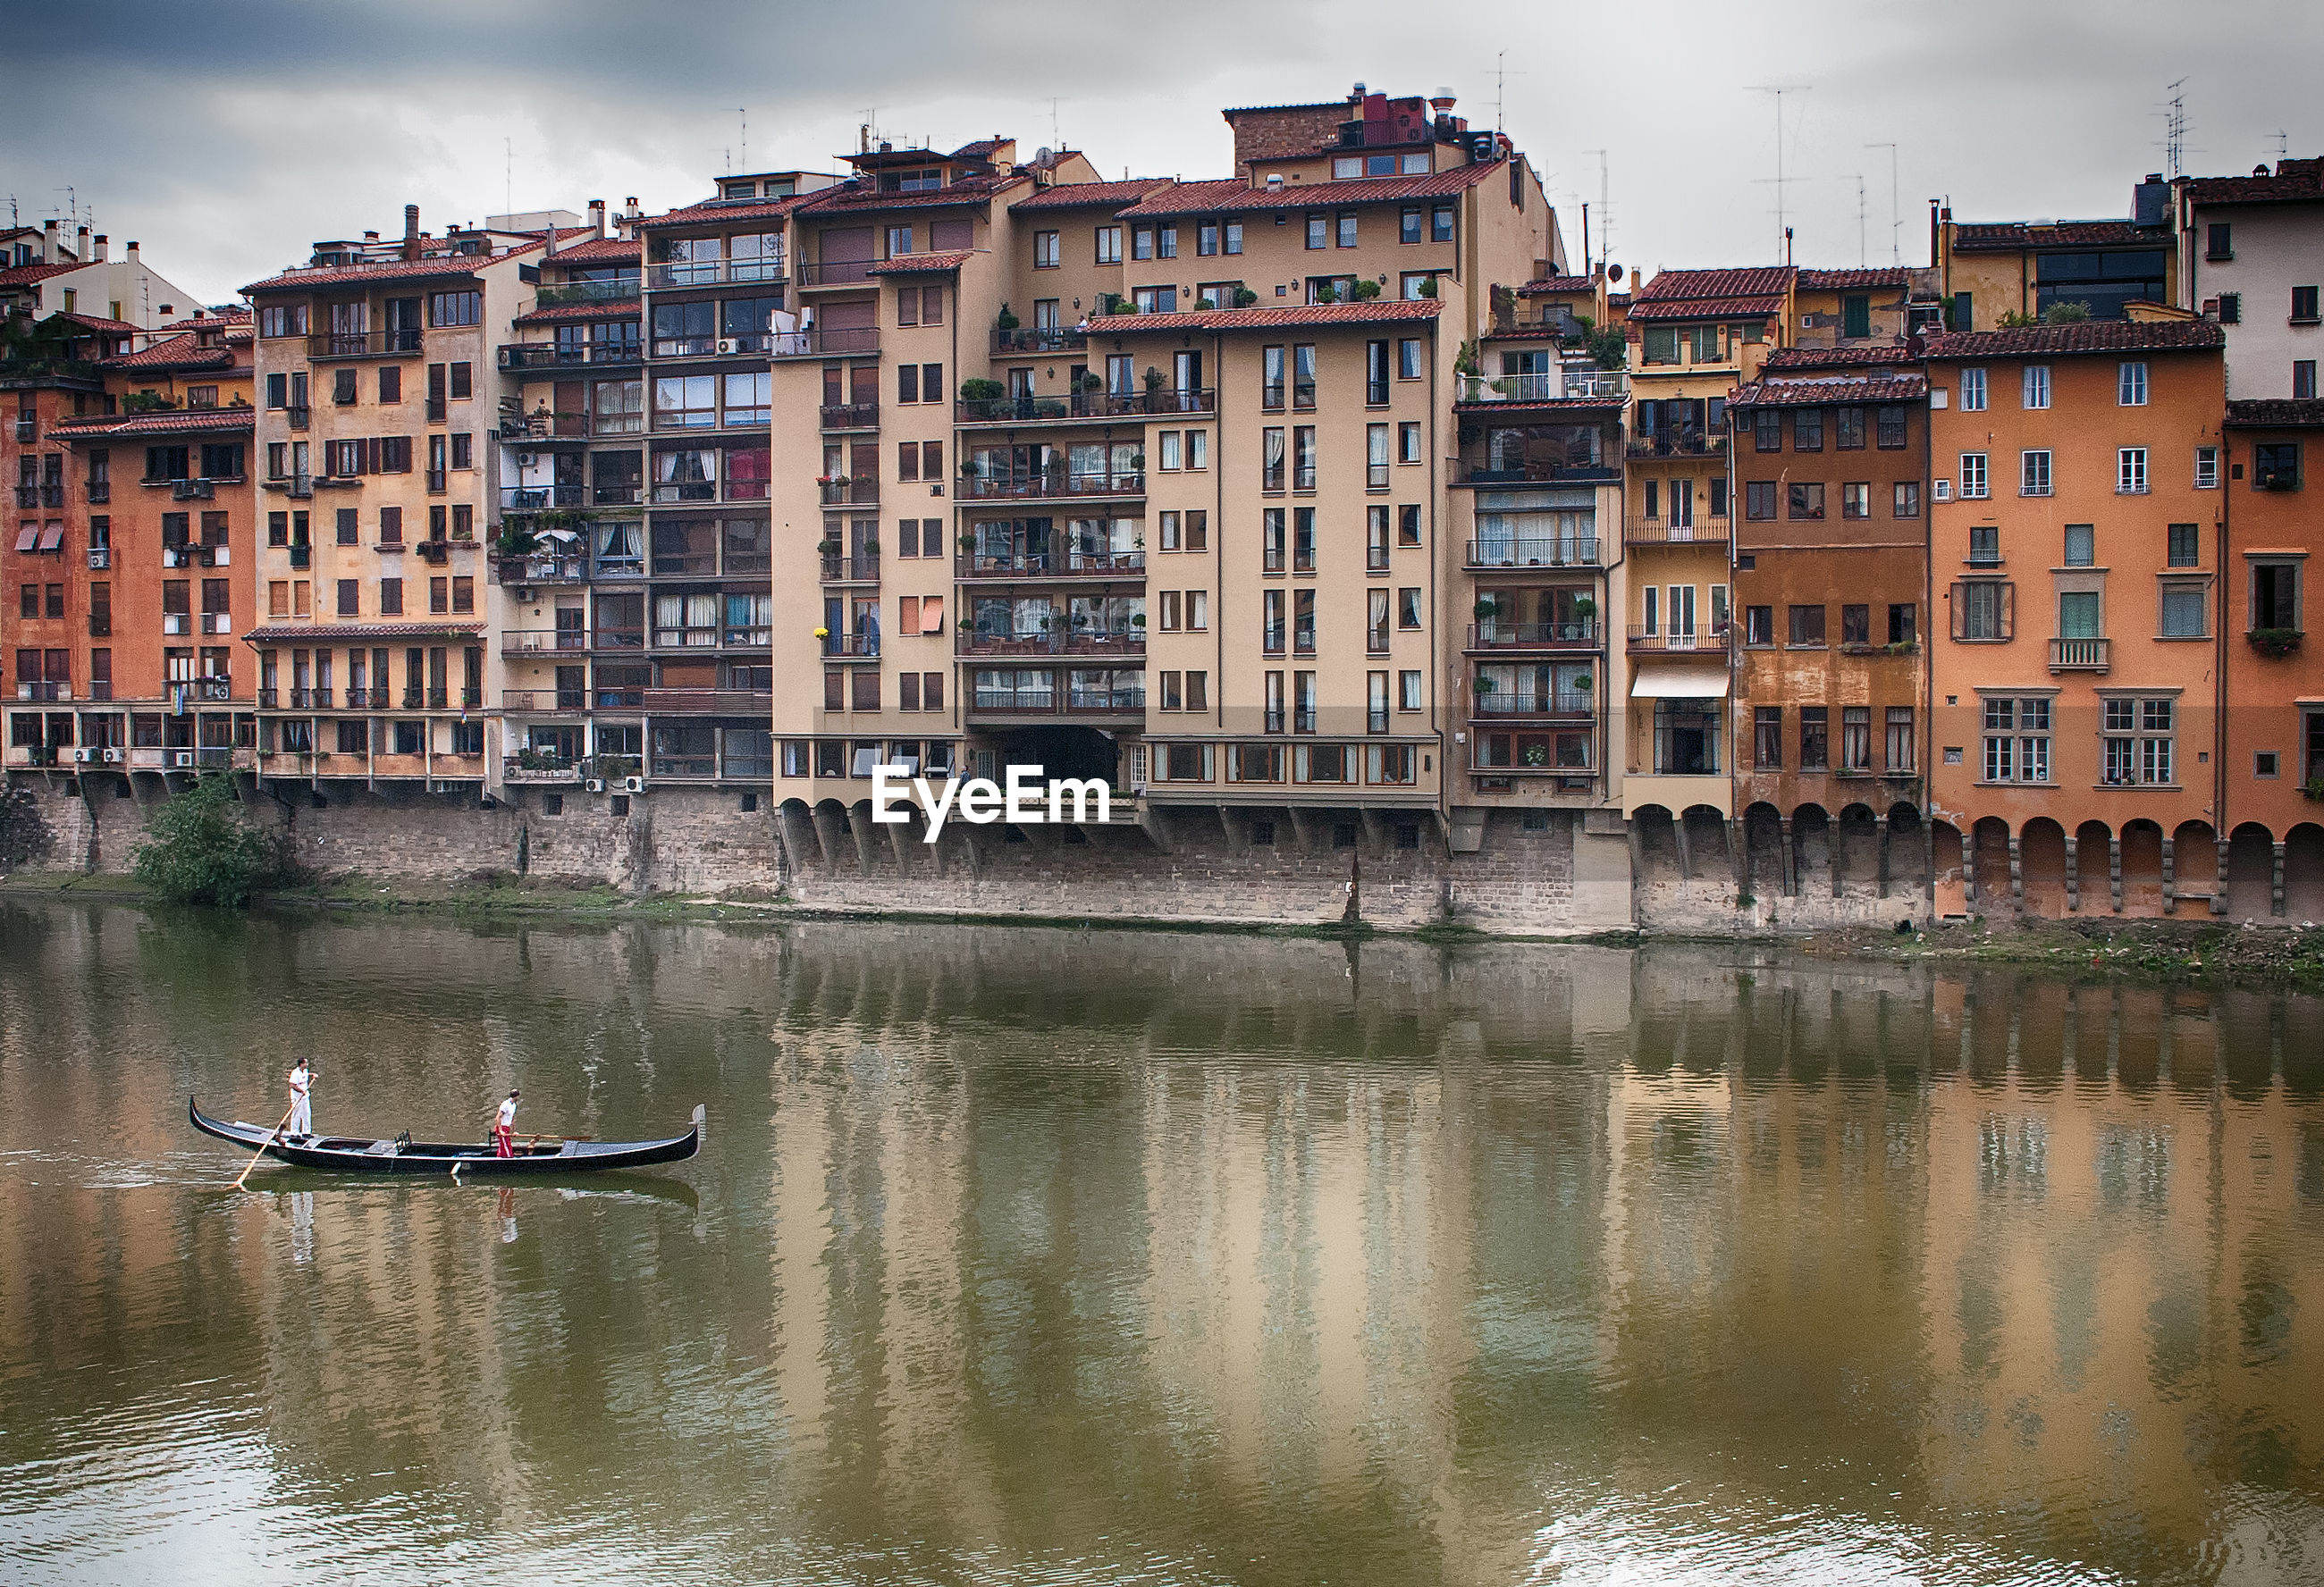 Boats in canal with buildings in background